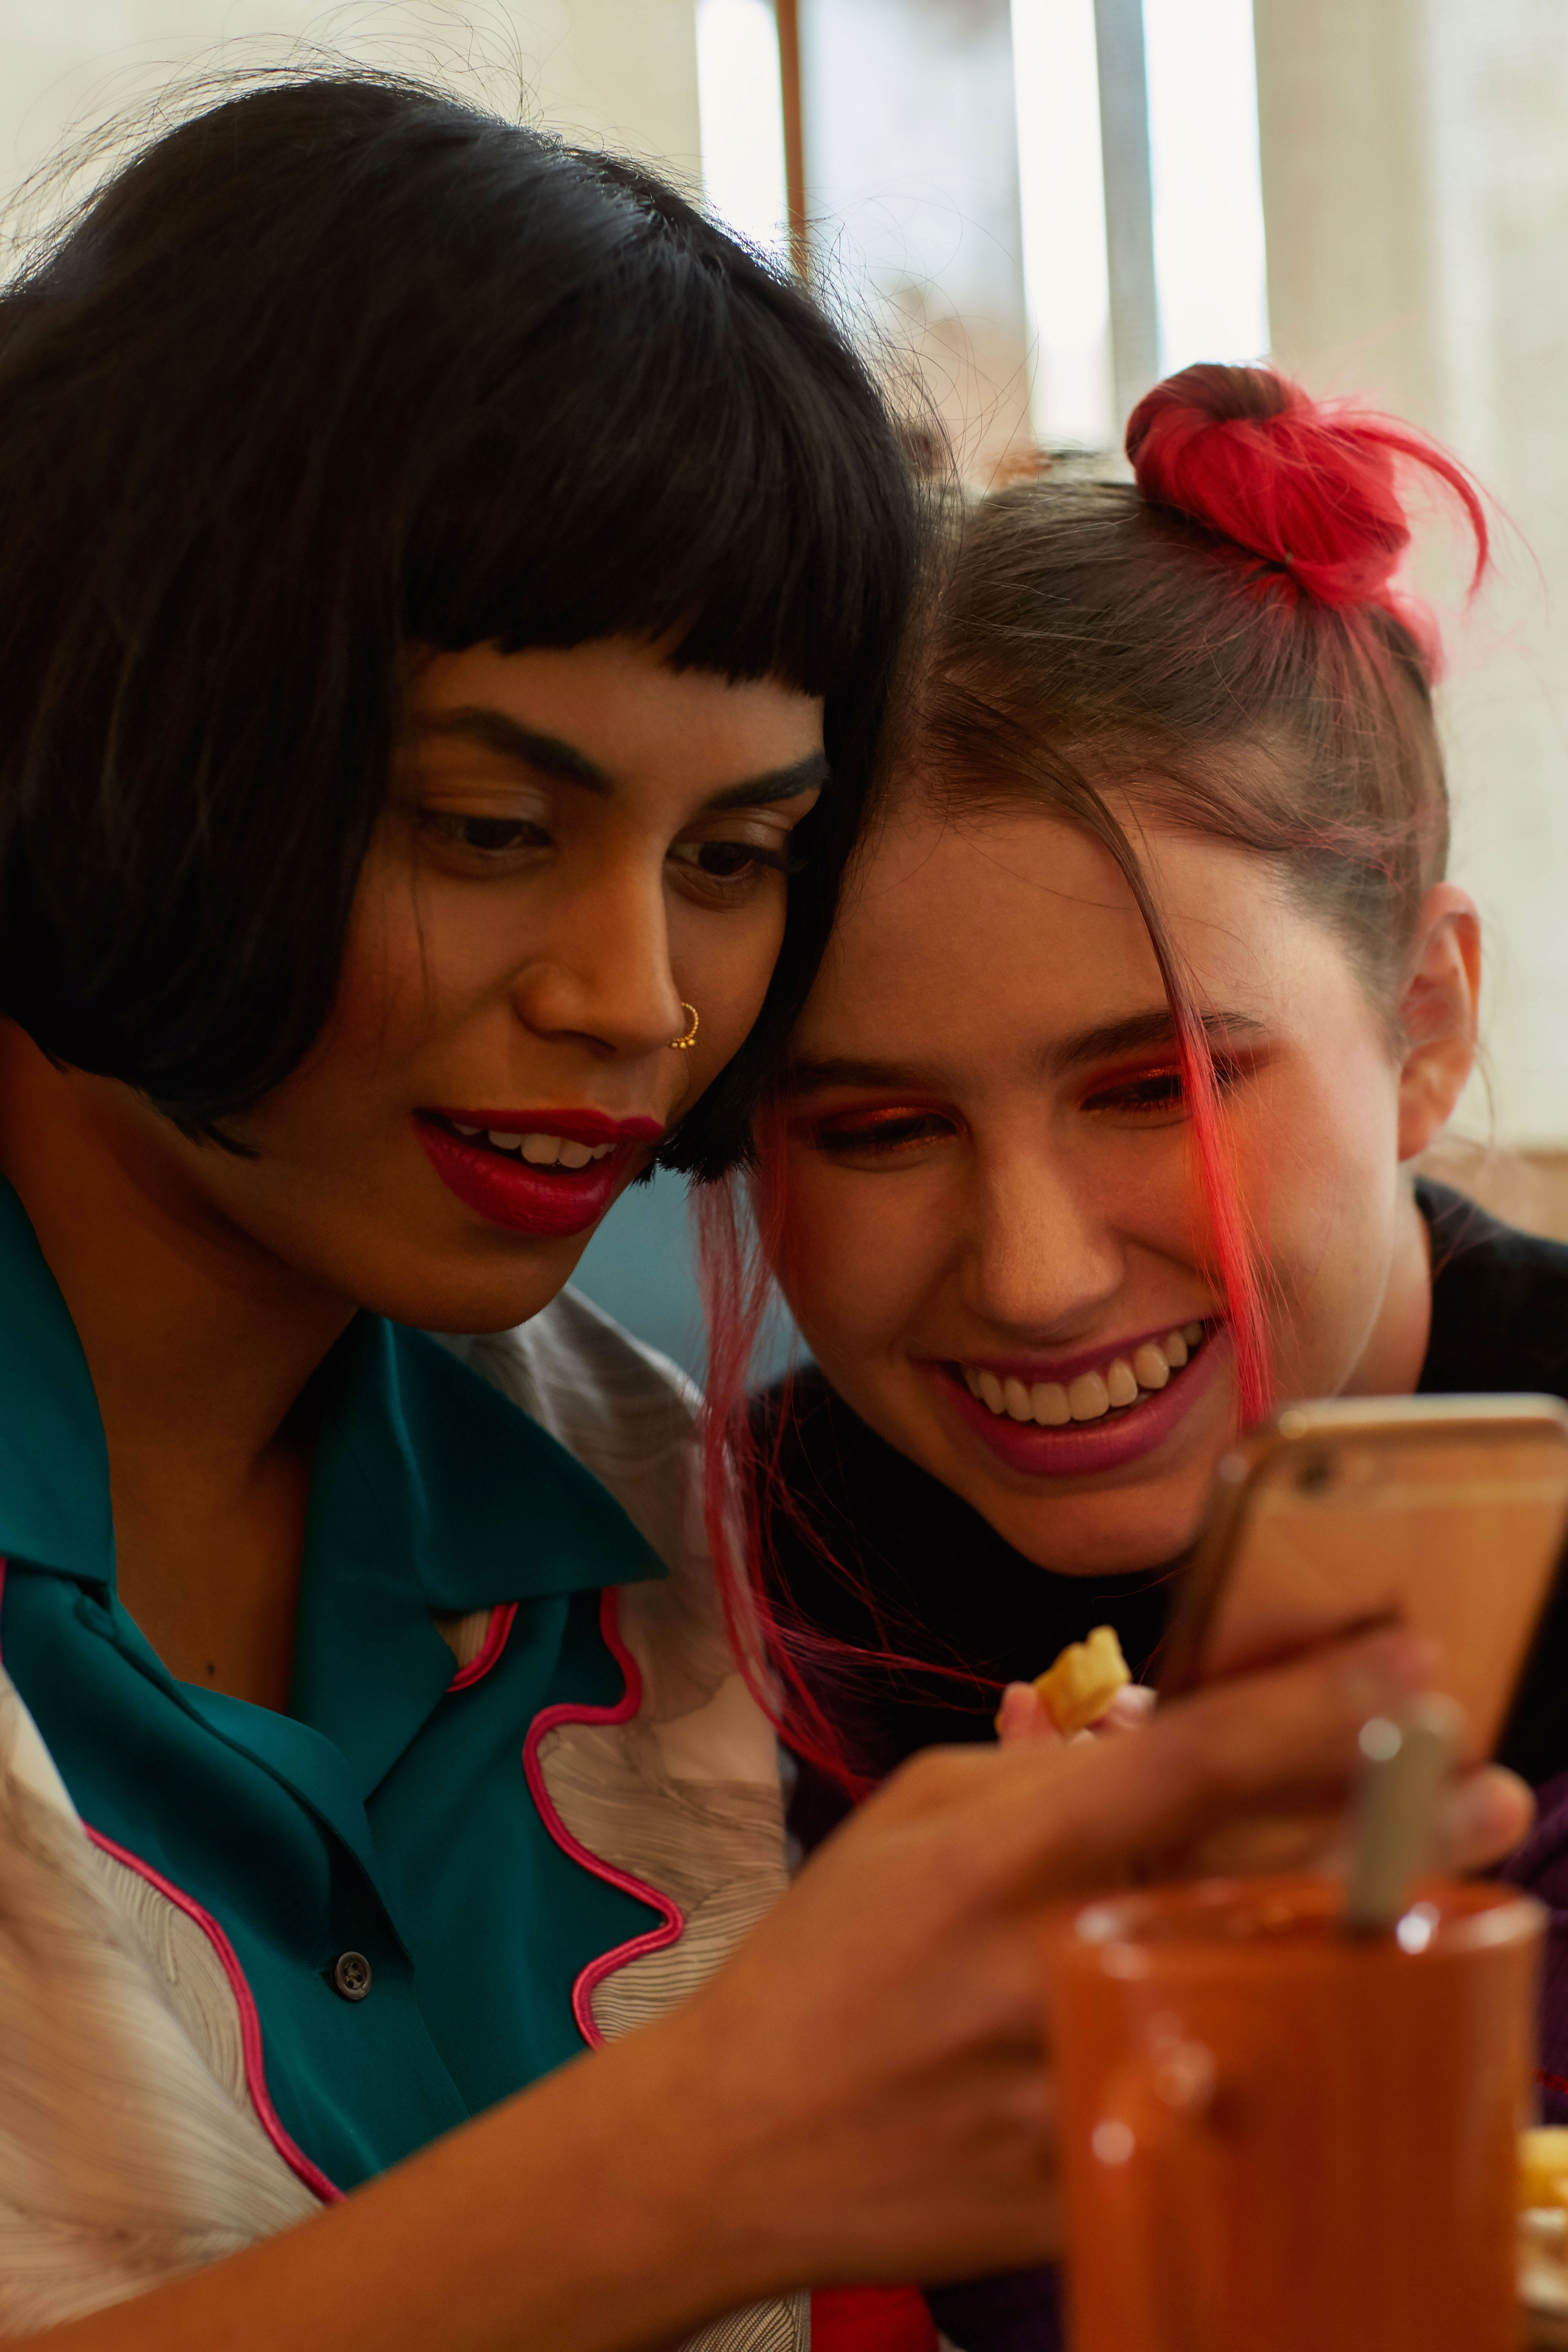 How To Make Friends In Your 20s As Adults After College